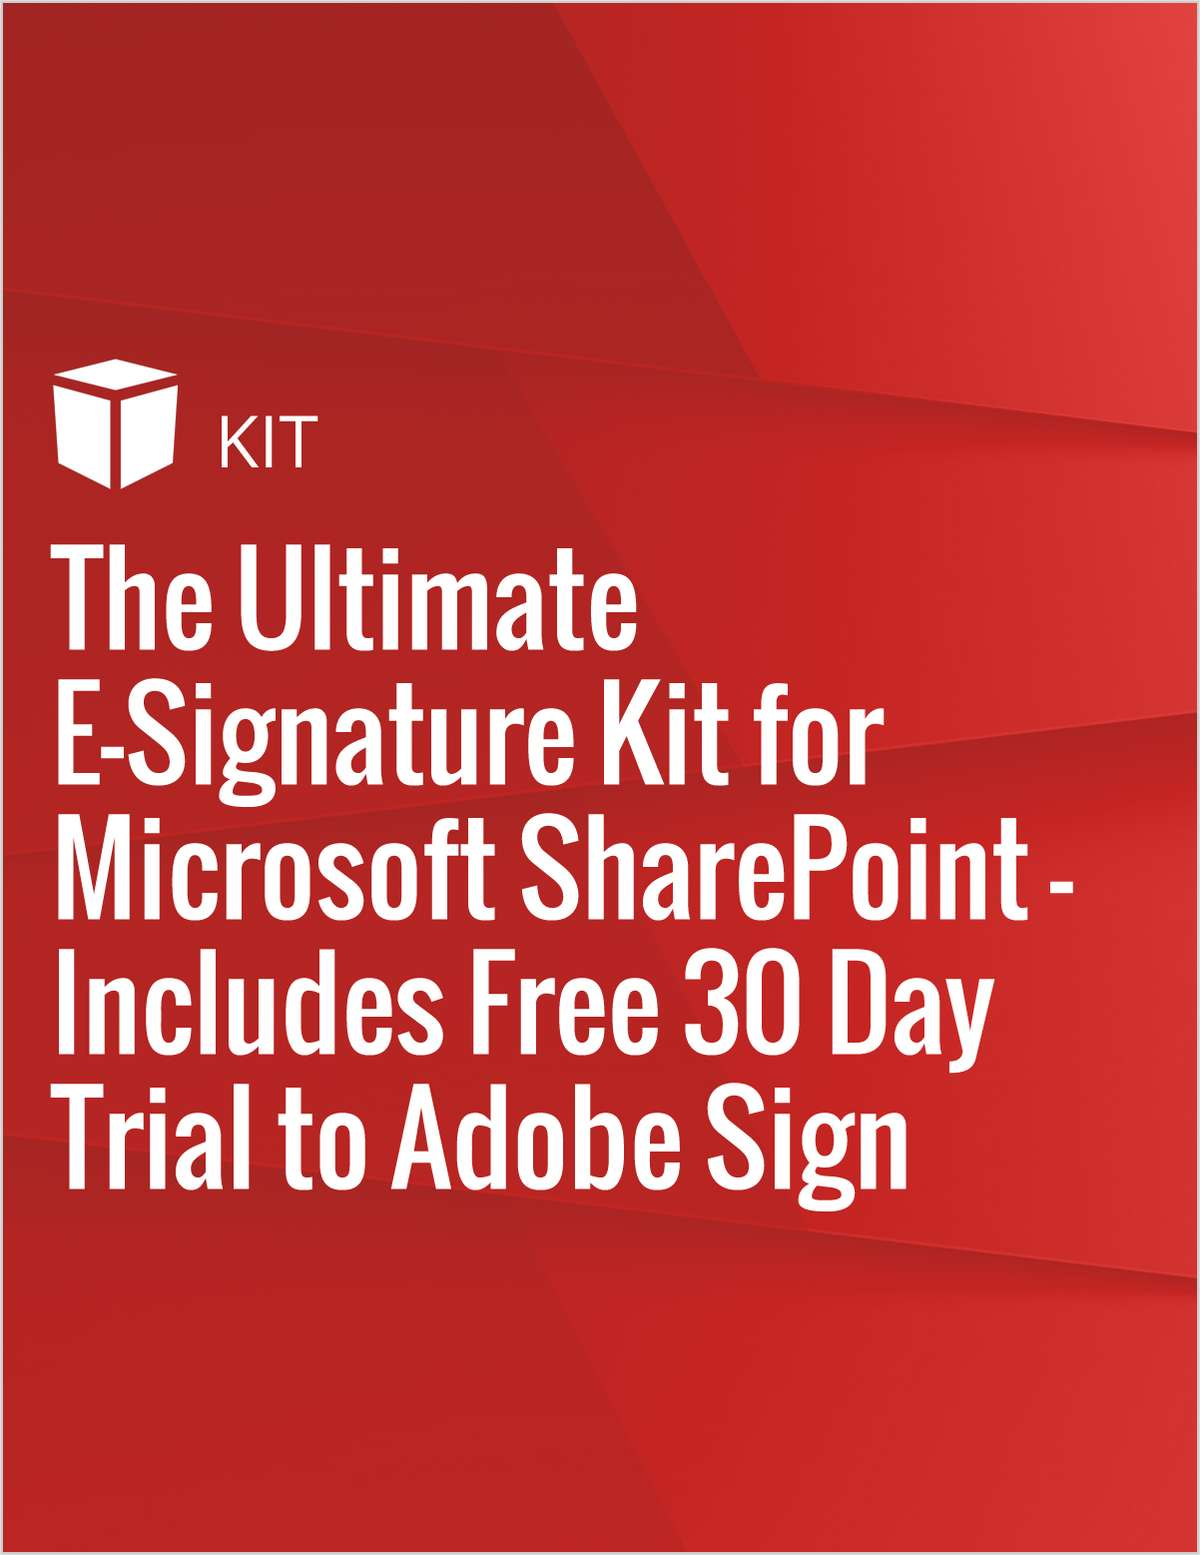 The Ultimate E-Signature Kit for Microsoft SharePoint - Includes Free 30 Day Trial to Adobe Sign